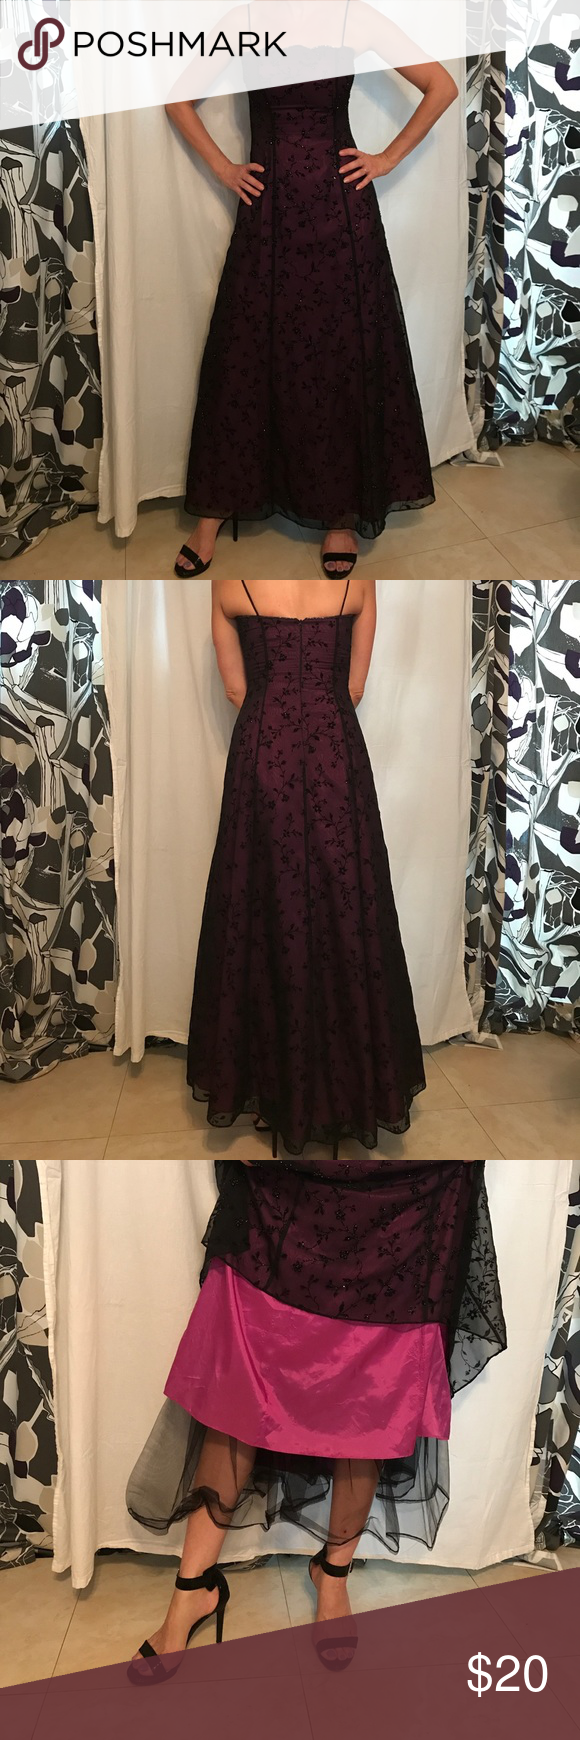 Cache prom/evening gown   My Posh Picks   Pinterest   Gowns, Prom ...